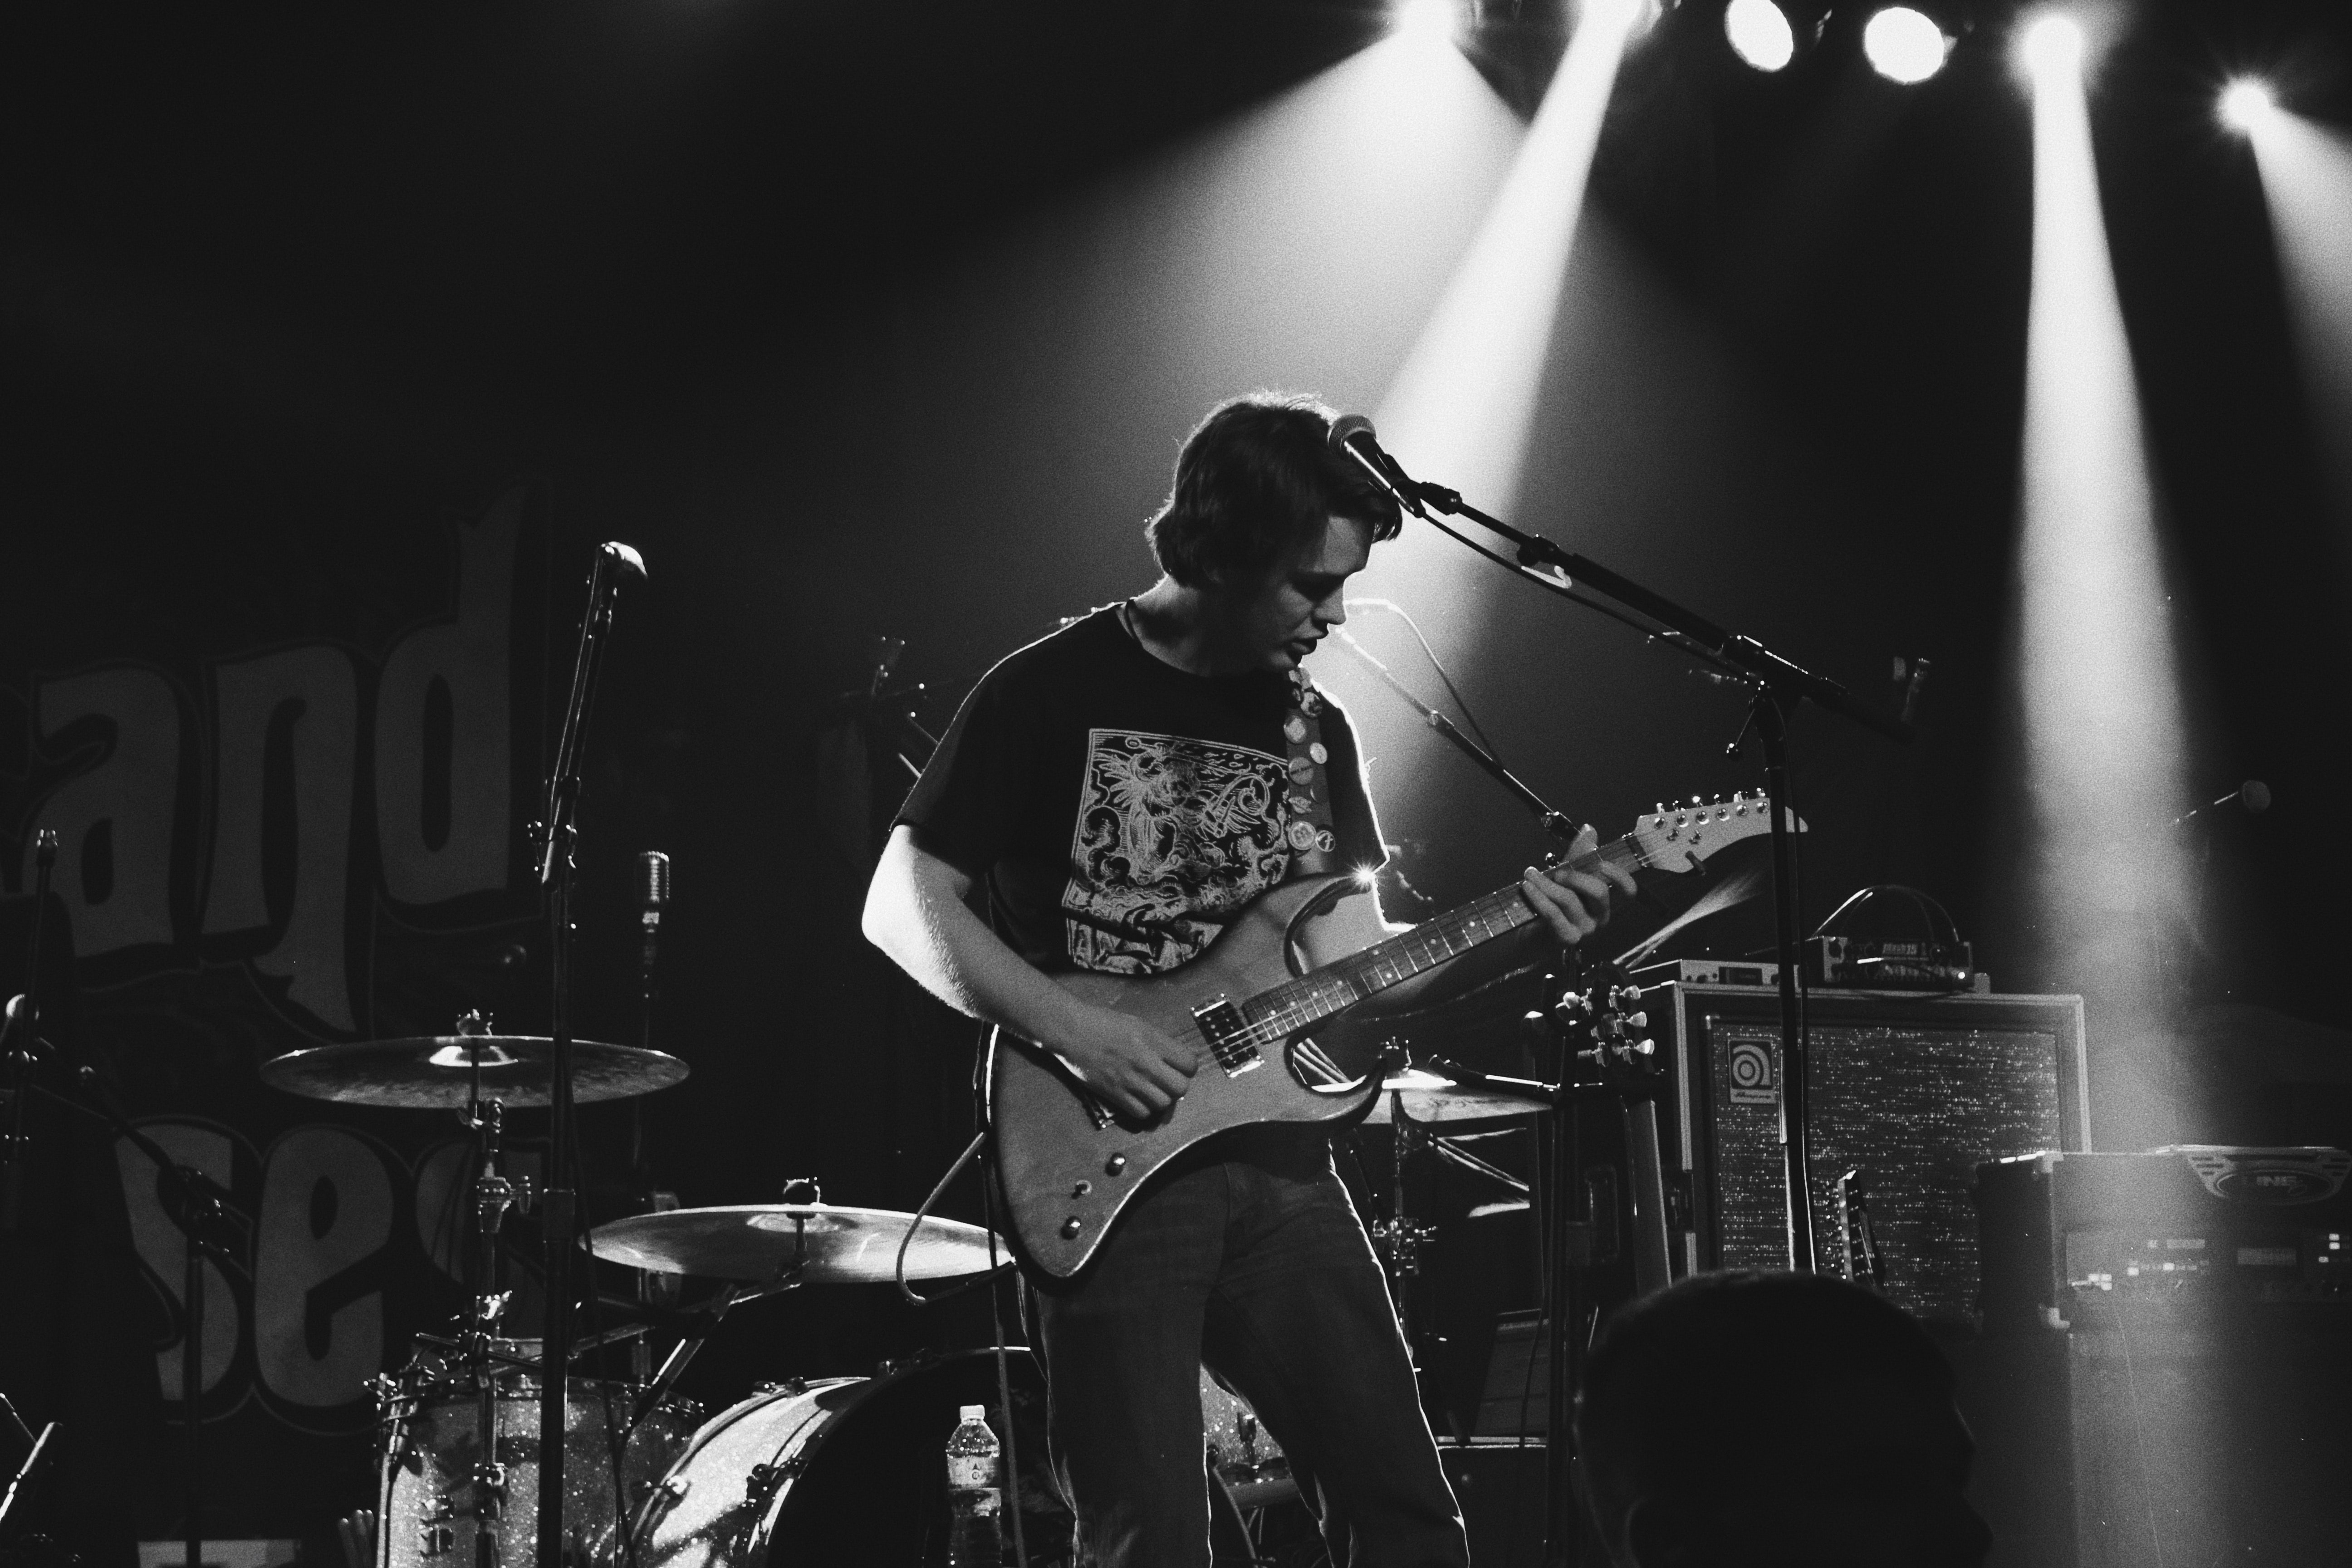 A black-and-white shot of a man playing an electric guitar on a busy stage